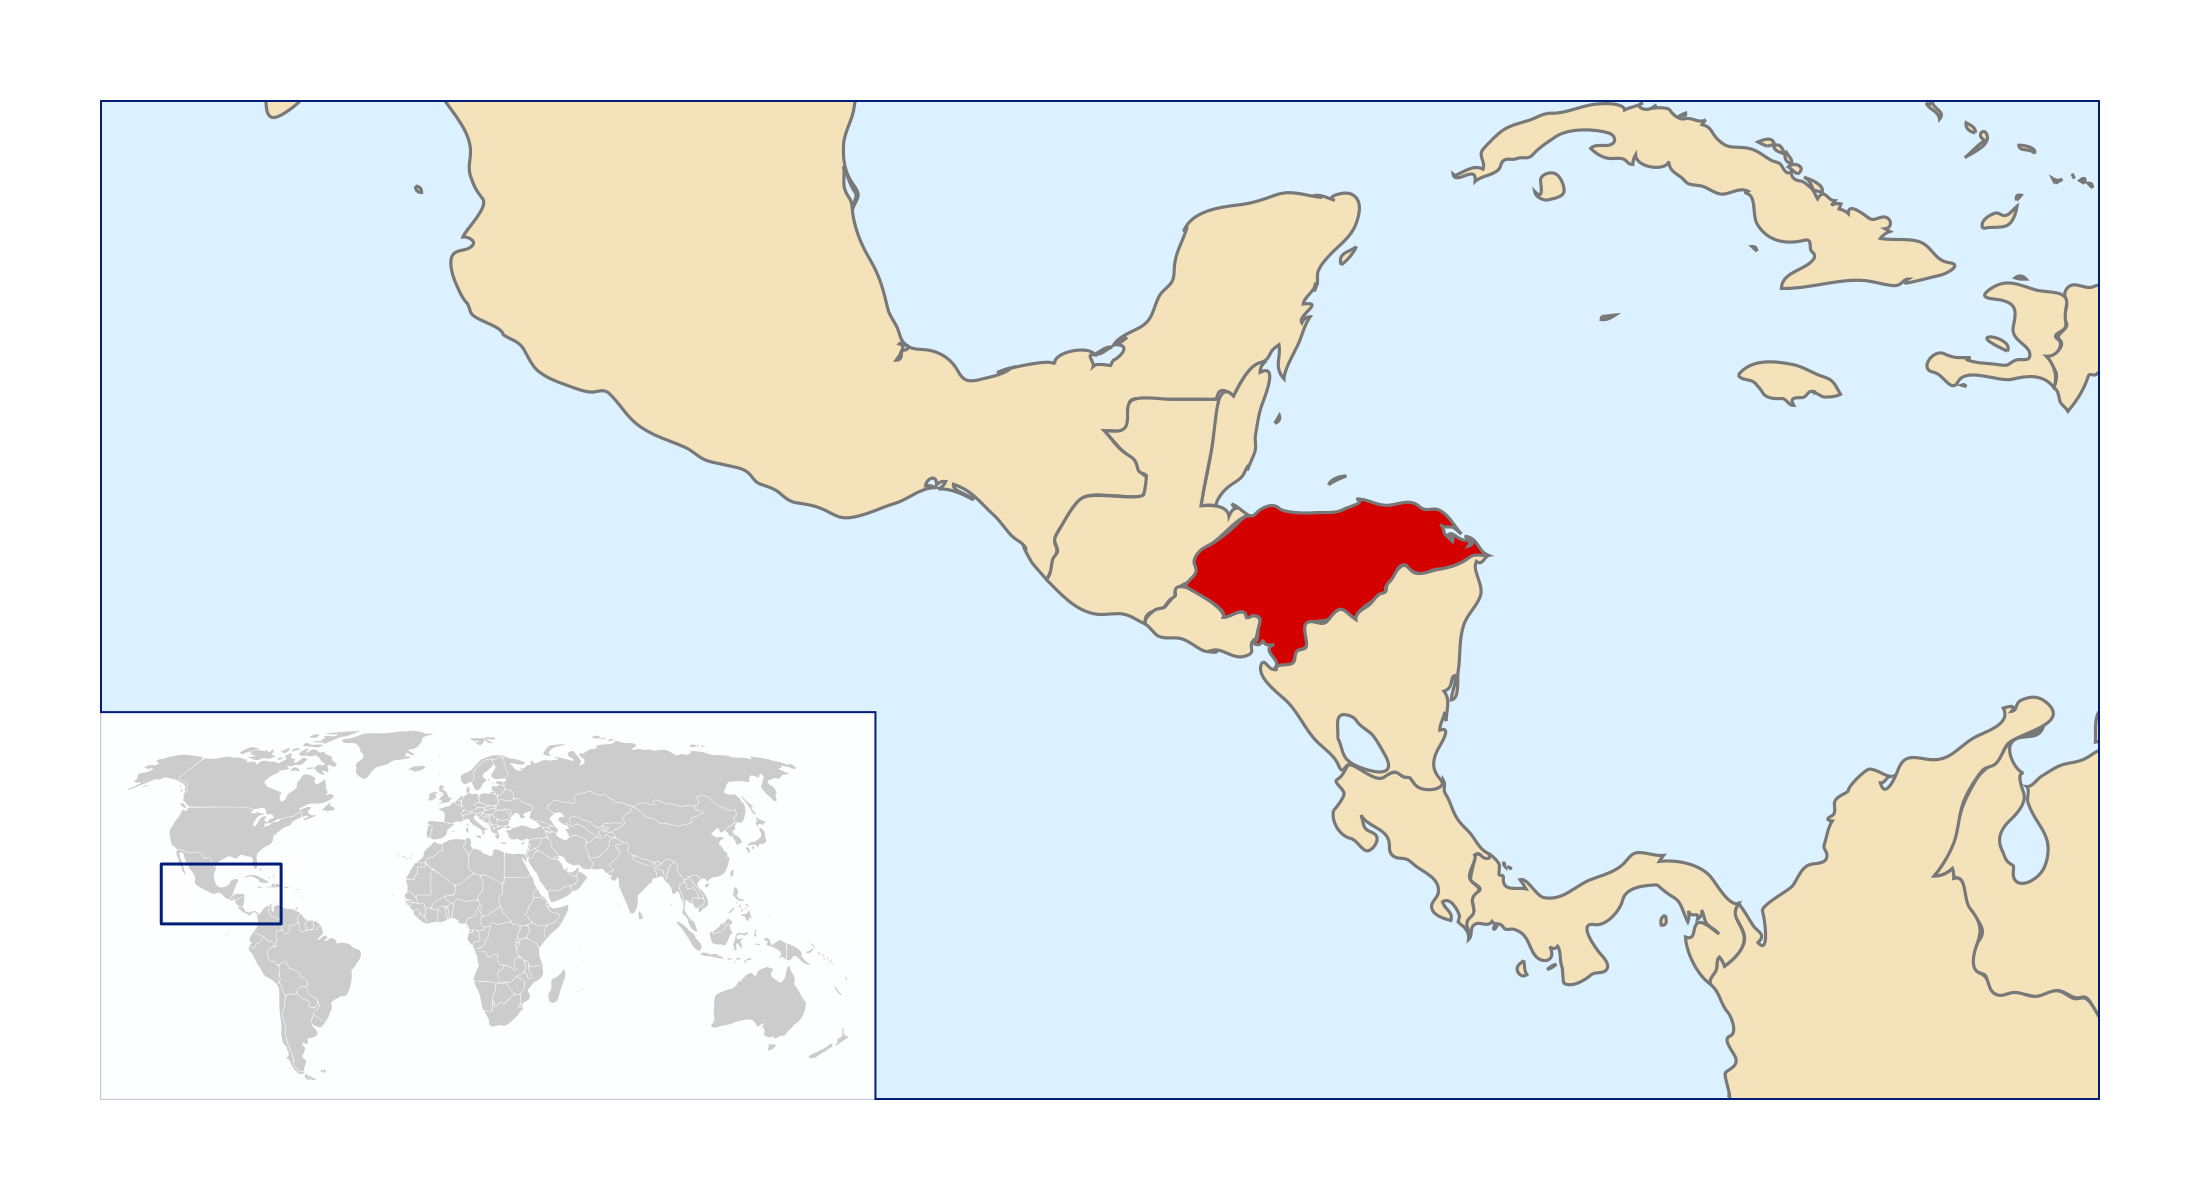 Marvelous Large Location Map Of Honduras In Central America